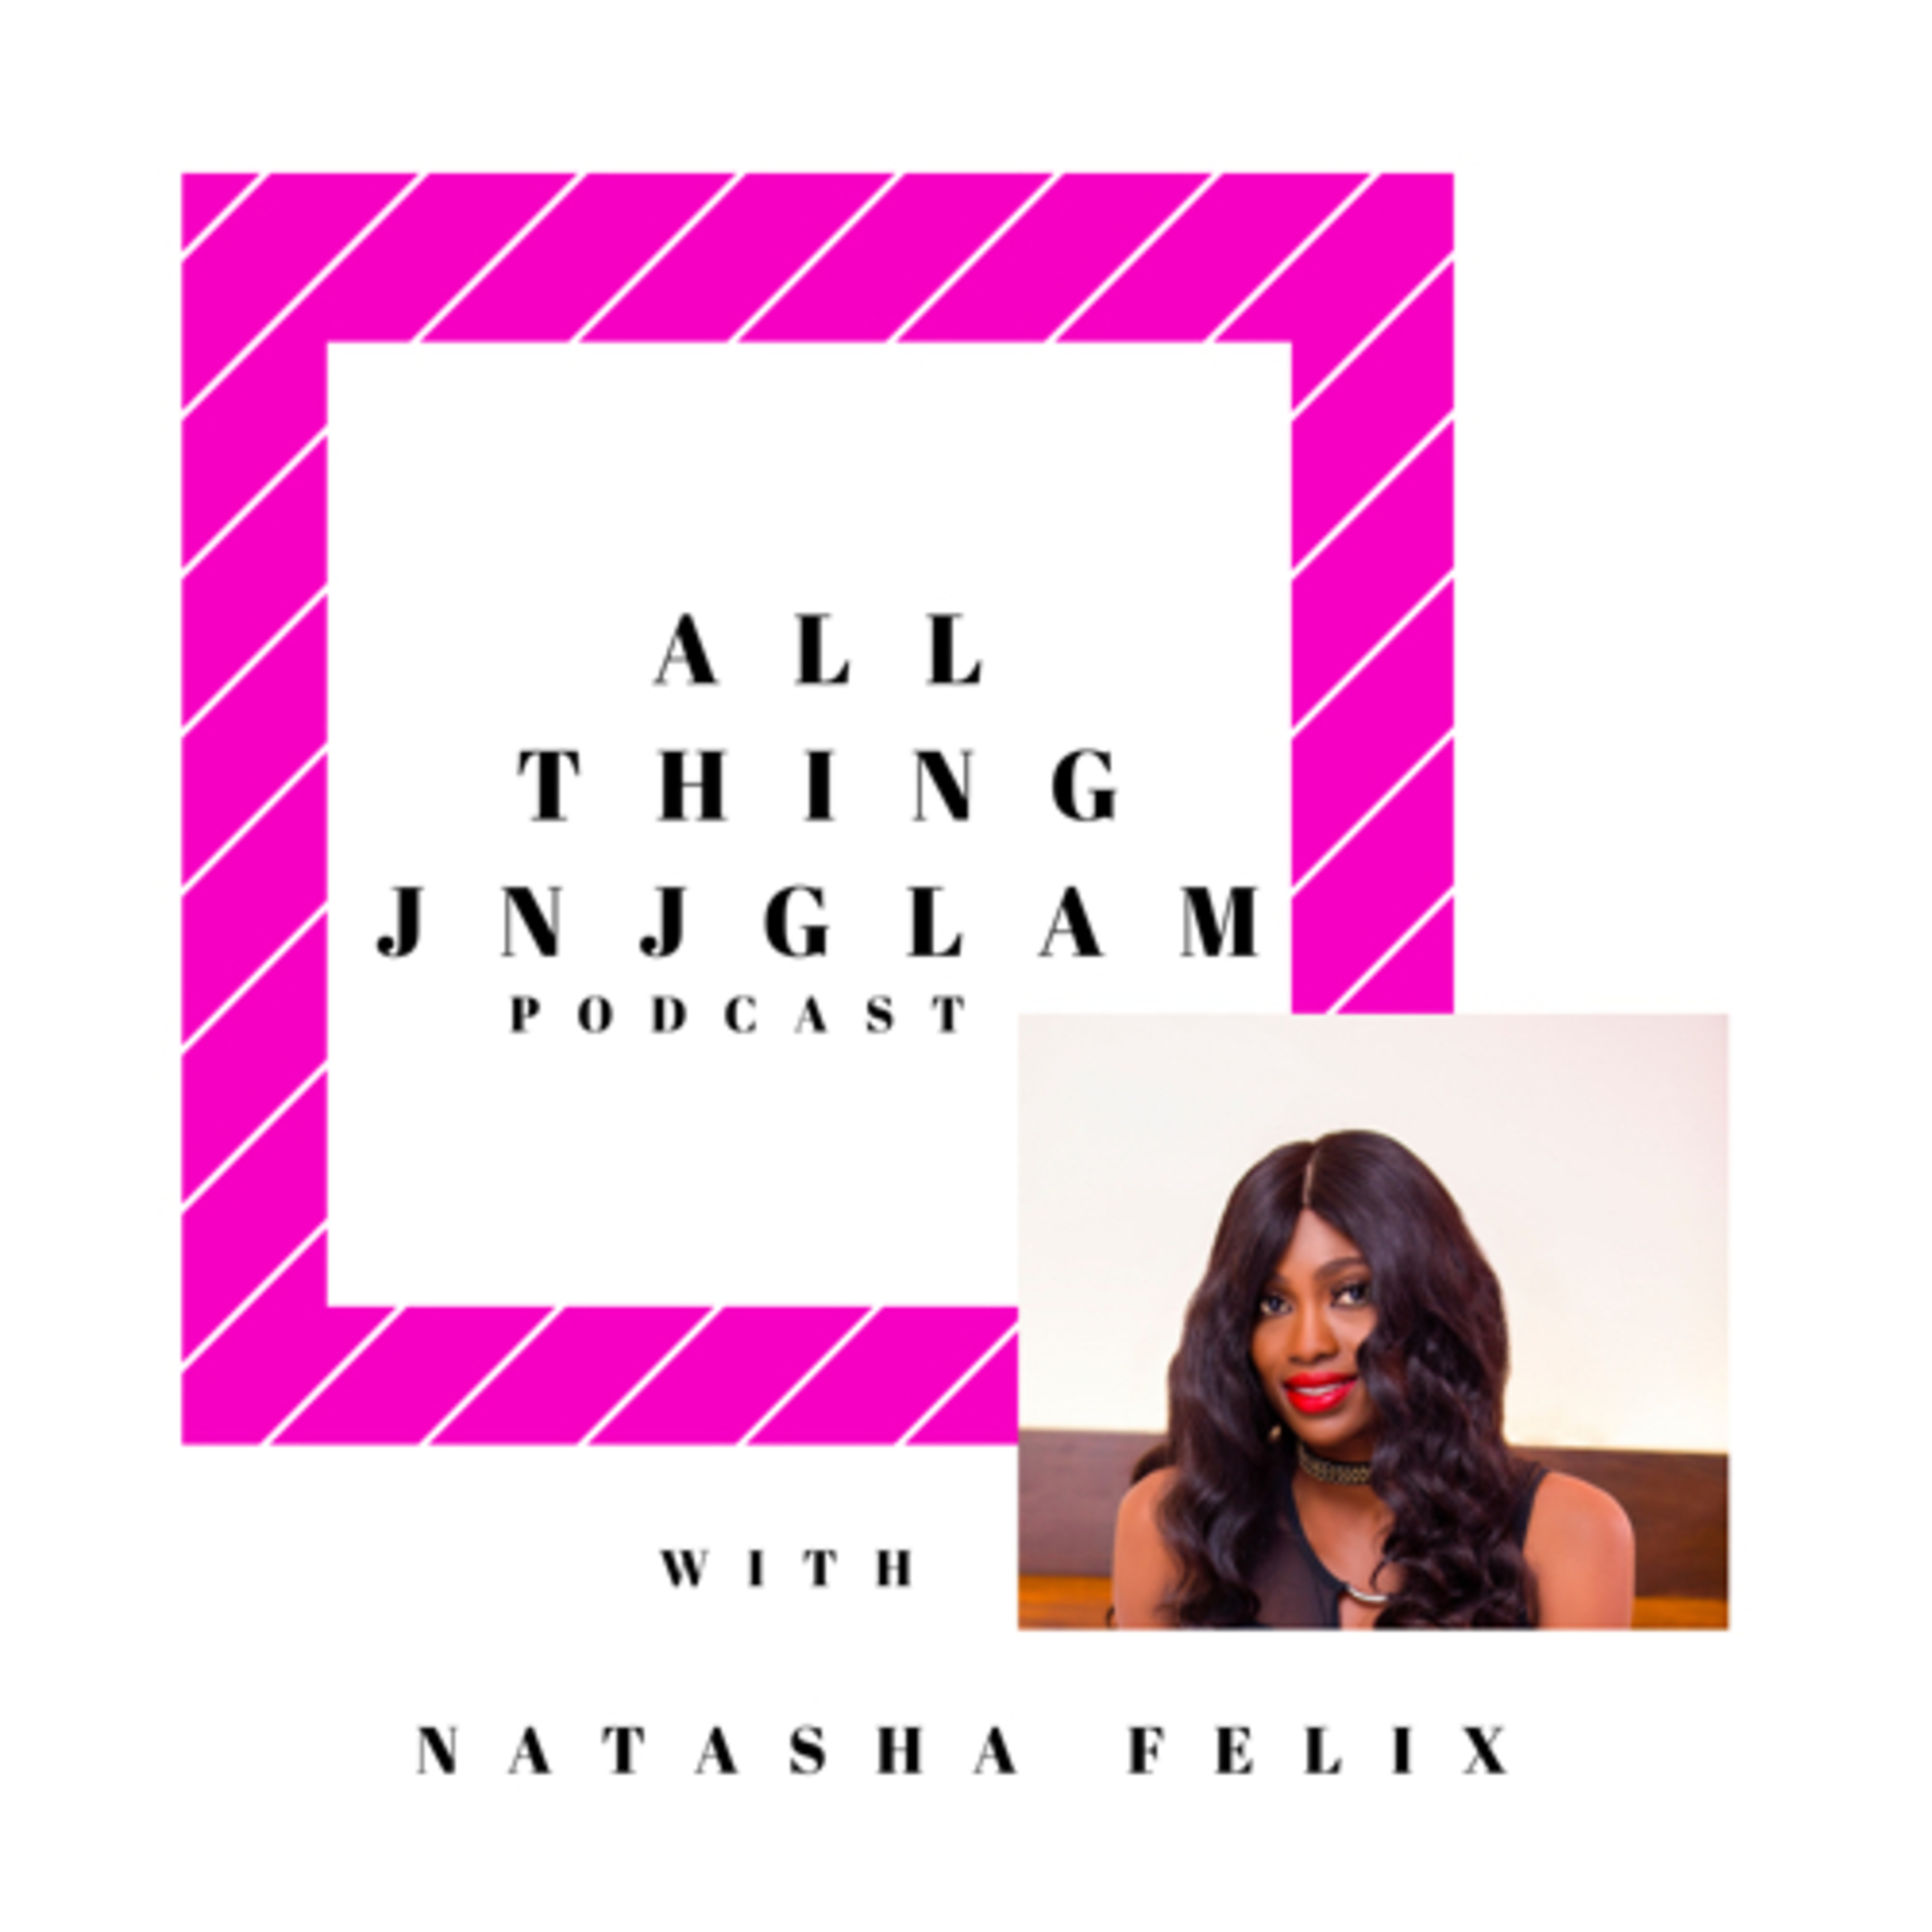 All things JNJ GLAM podcast